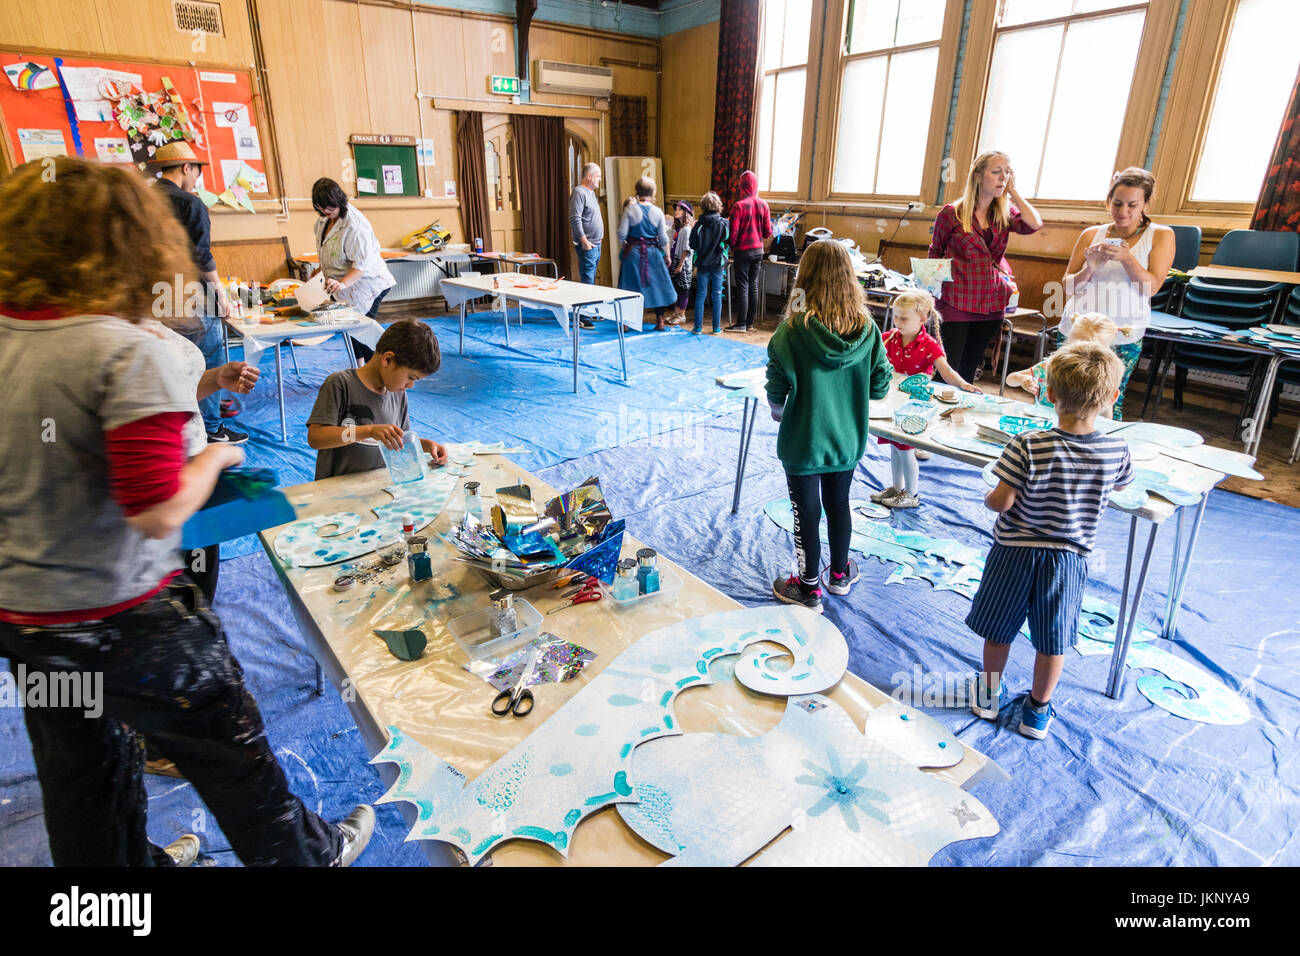 Caucasian adults and children at indoor creative arts and crafts workshop. Children working at tables painting cardboard - Stock Image